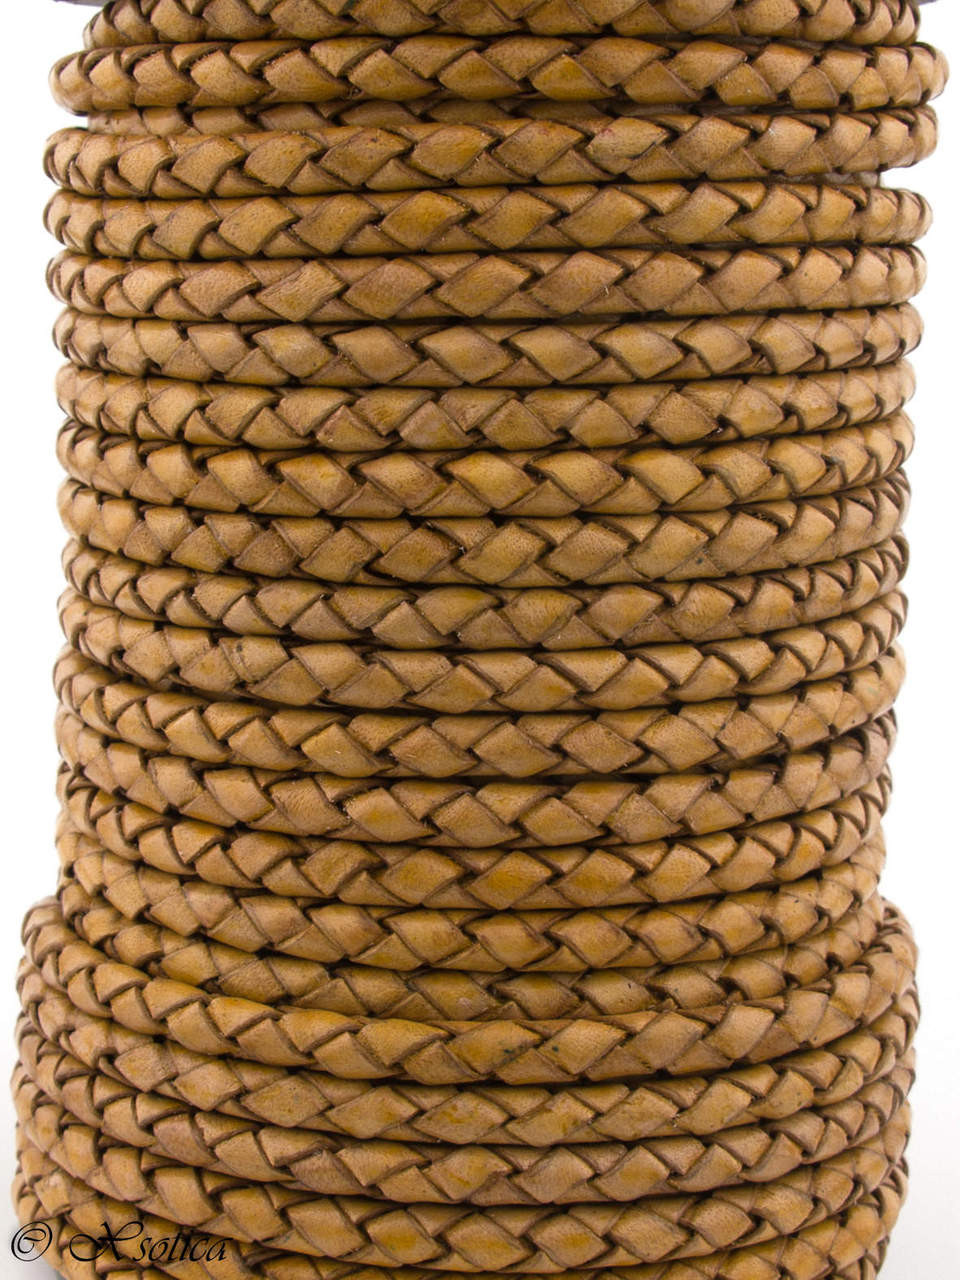 Flat Leather Cords 3.0MM X 2.0MM Xsotica Mustard Natural 1 Yard